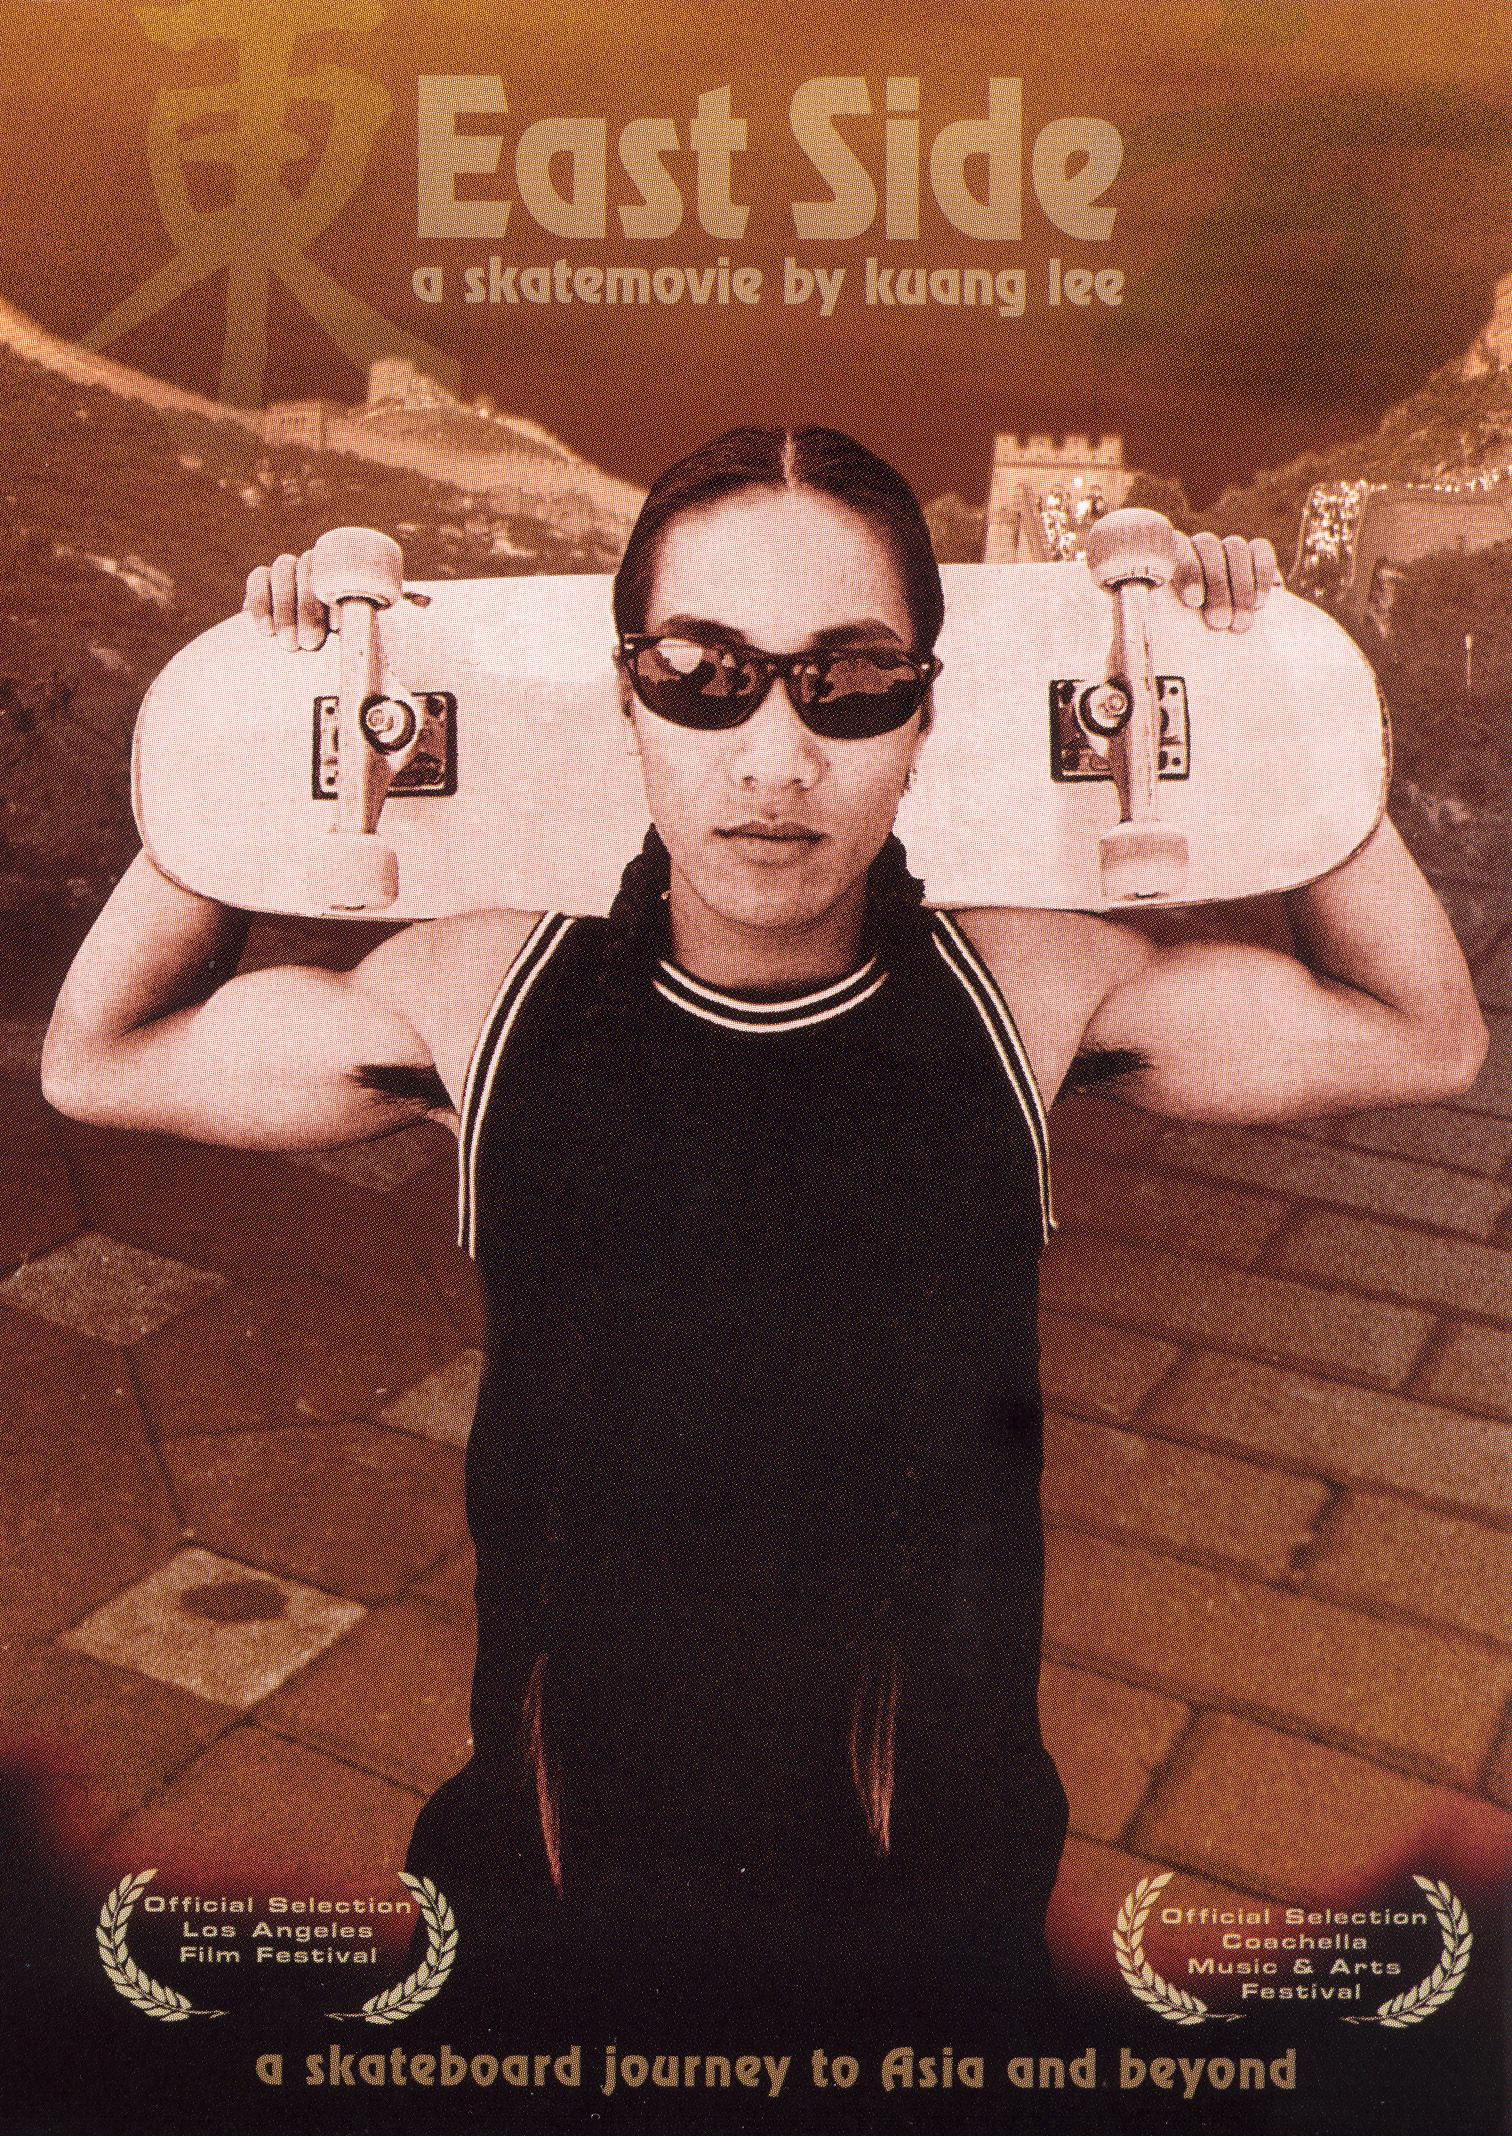 East Side: A Skateboard Journey to Asia and Beyond